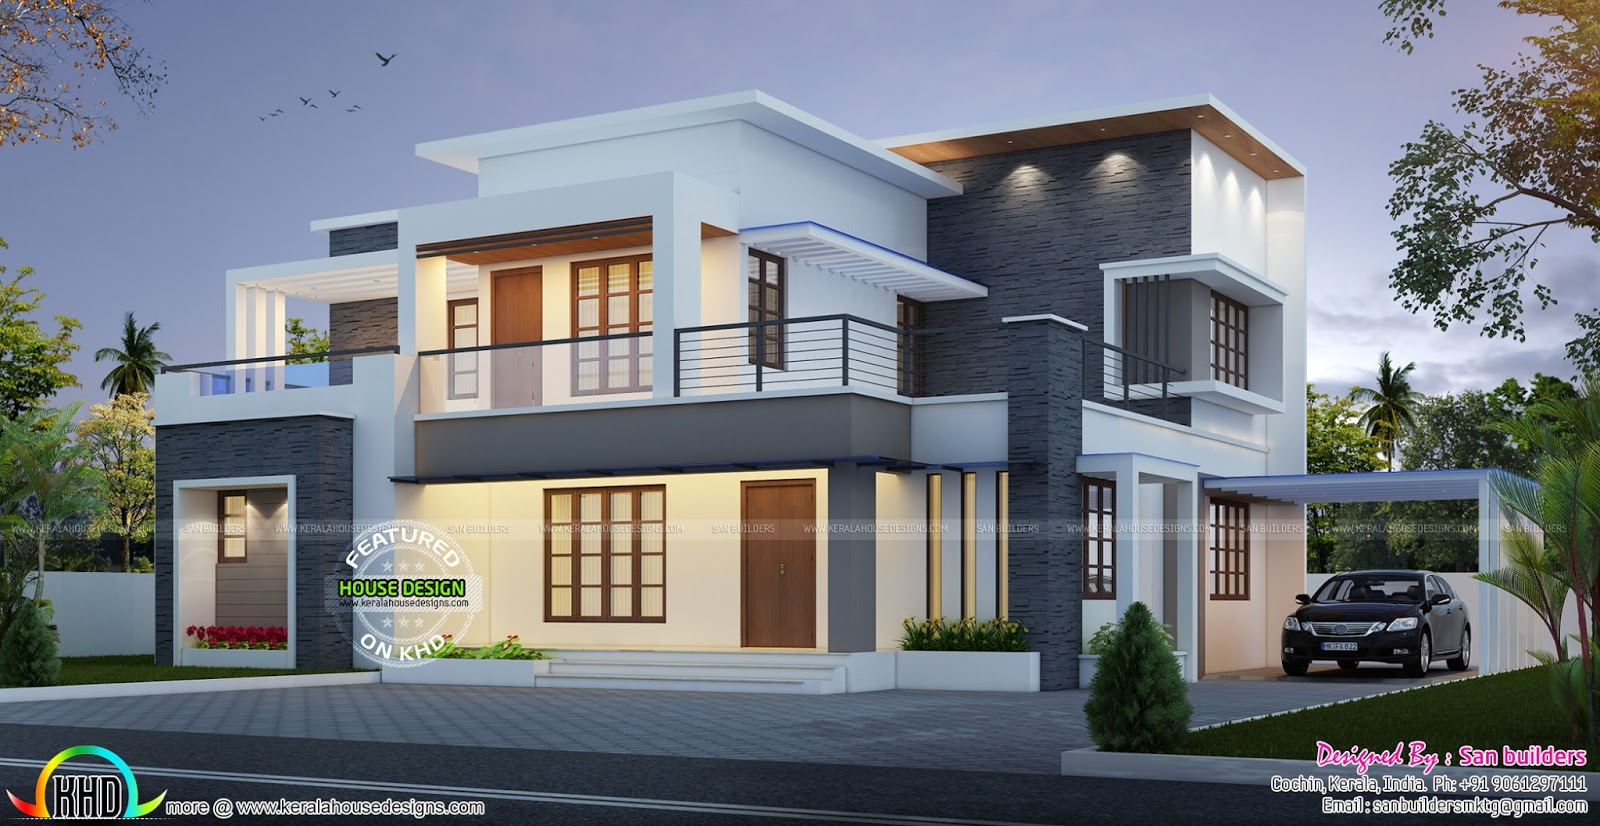 House plan and elevation by san builders kerala home for Elevation house plans